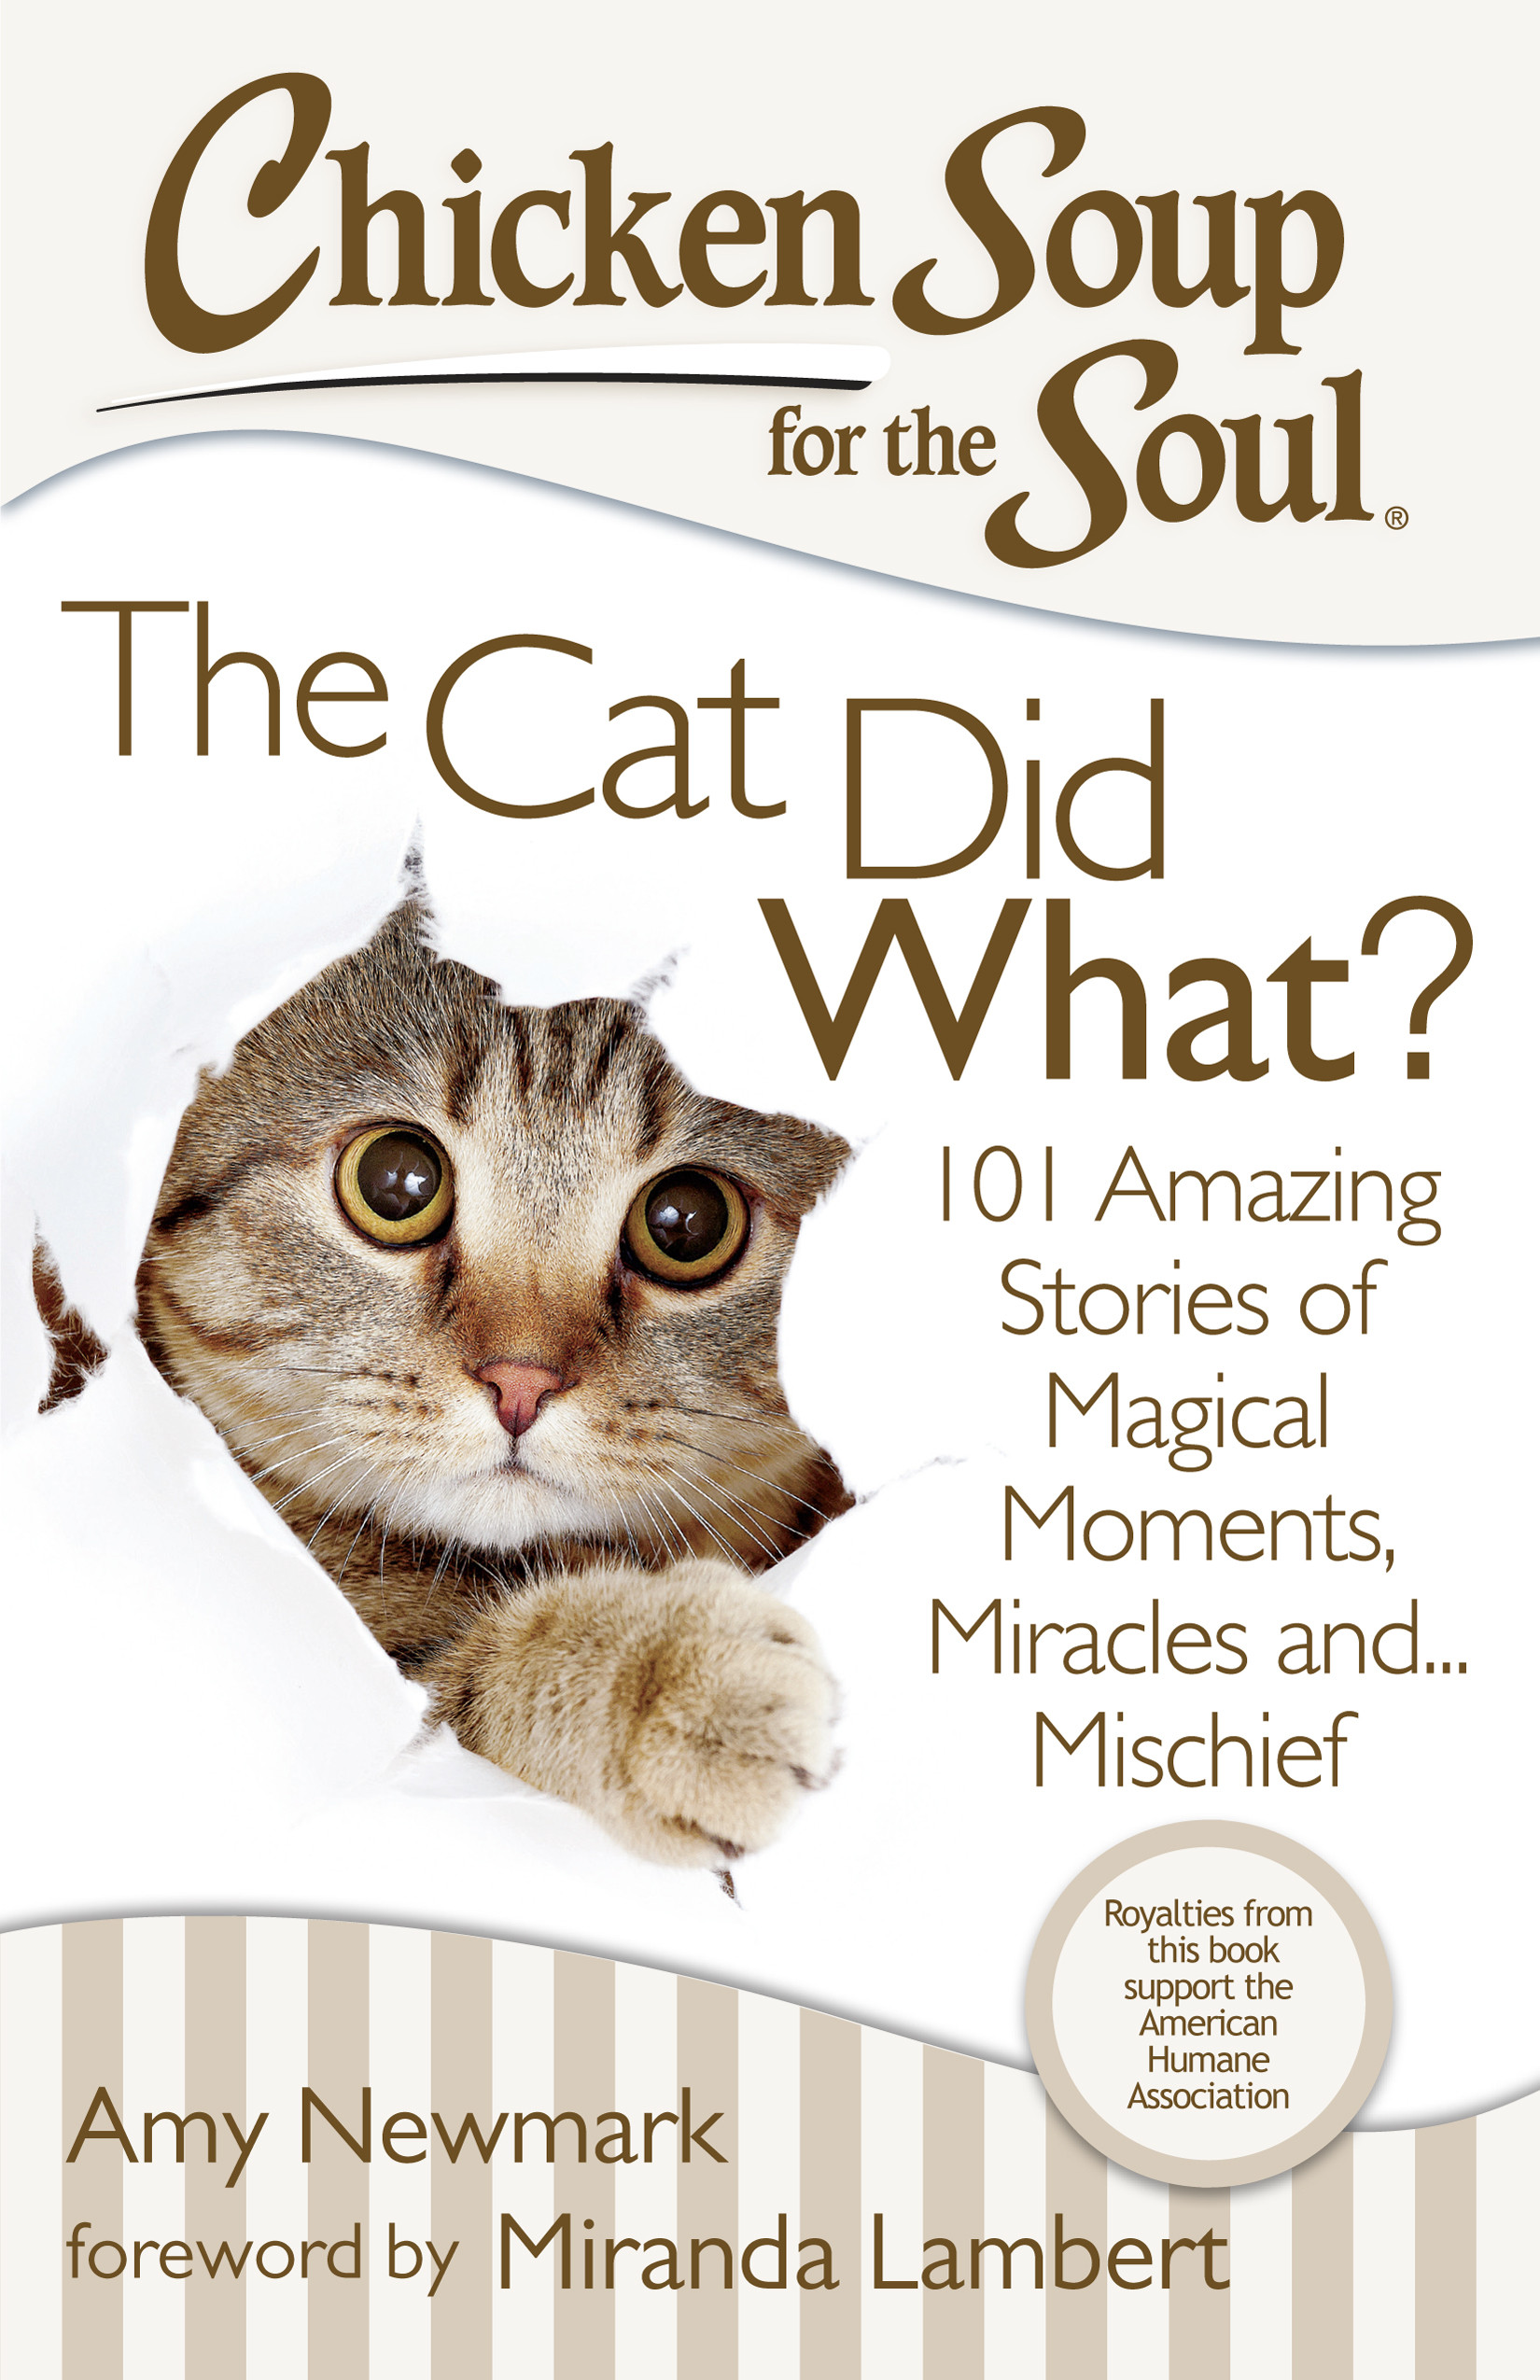 Chicken Soup For The Soul Stories  Chicken Soup for the Soul The Cat Did What